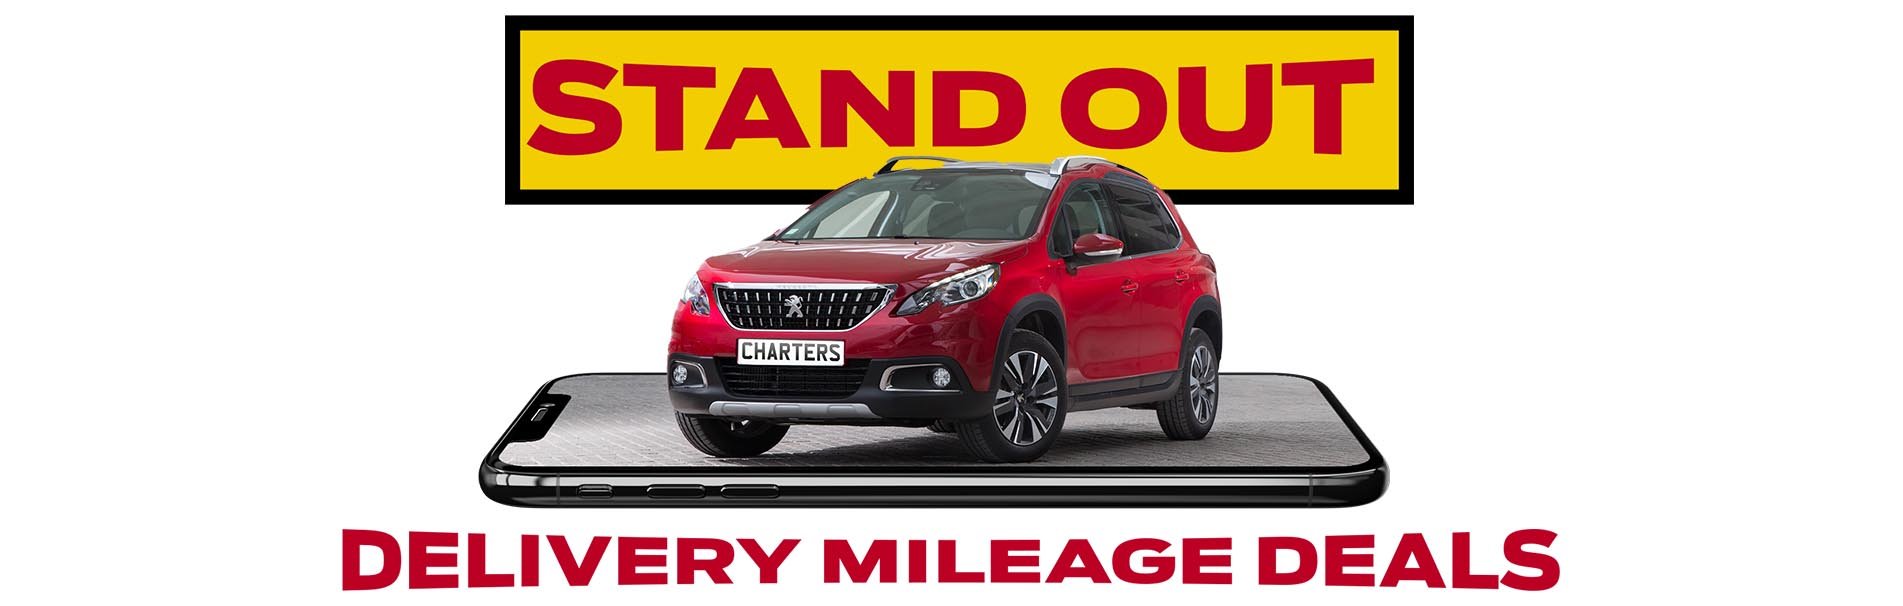 stand-out-delivery-mileage-peugeot-car-savings-sli